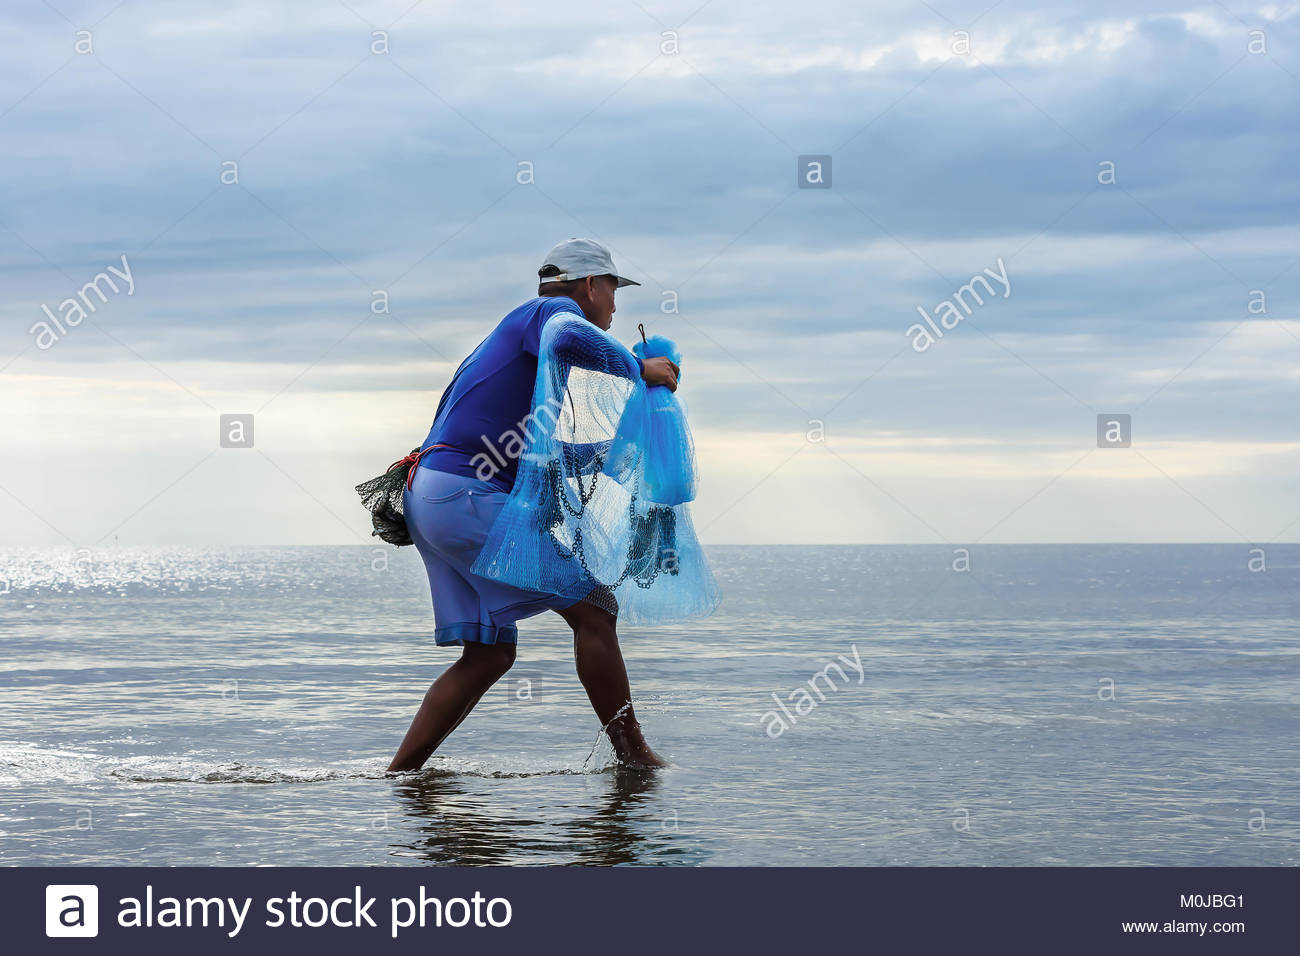 Thai fisherman got ready for a fish catch in the net - Stock Image